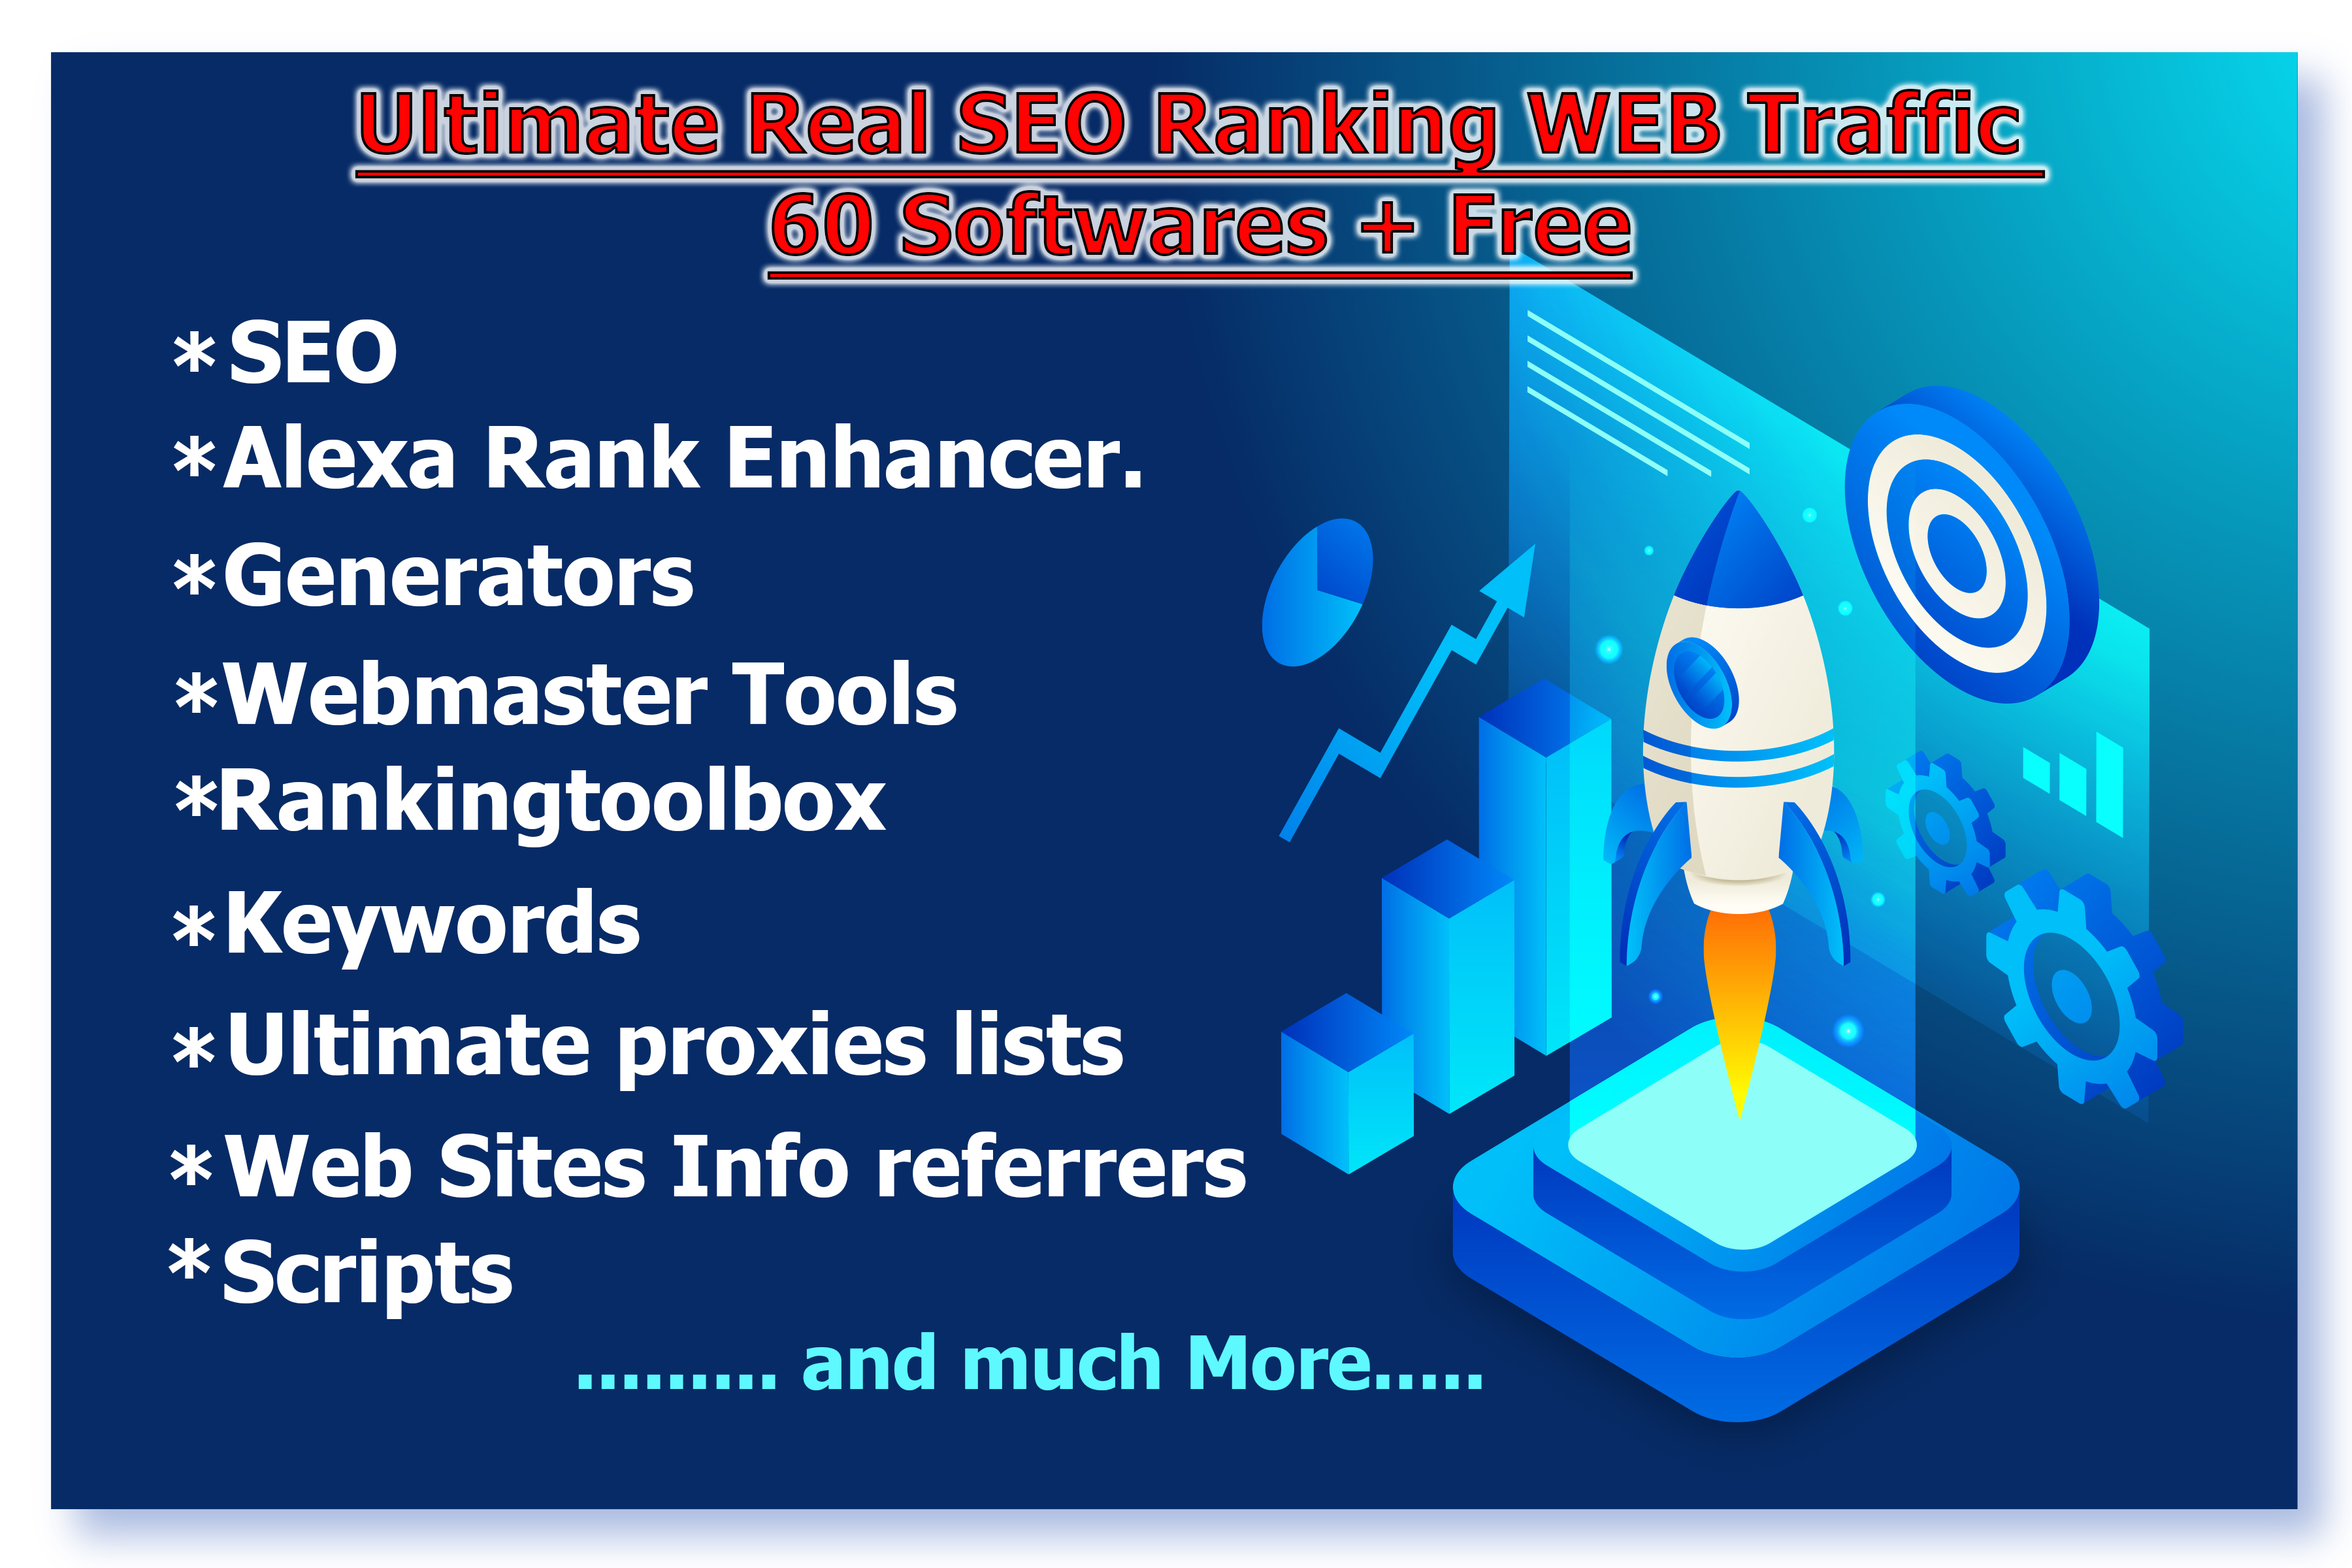 Ultimate Real SEO Ranking WEB Traffic 60 Softwares + Free